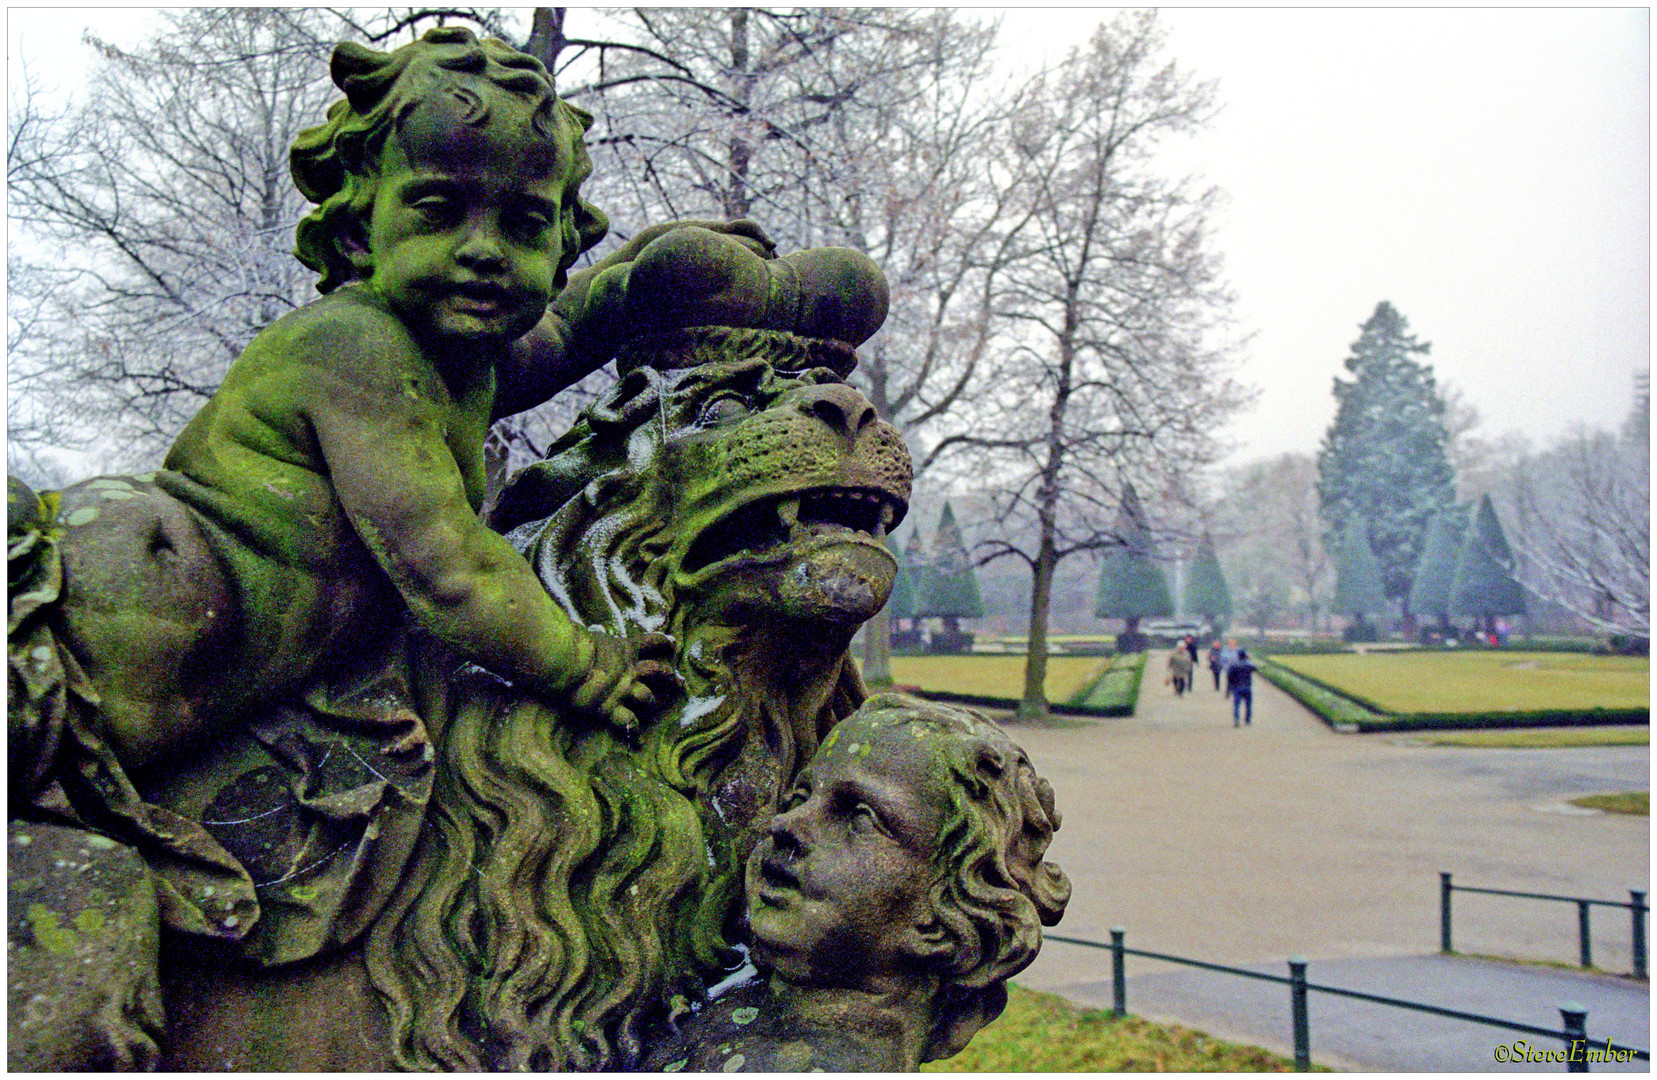 Cherubs and a Lion King in a Frosty Garden